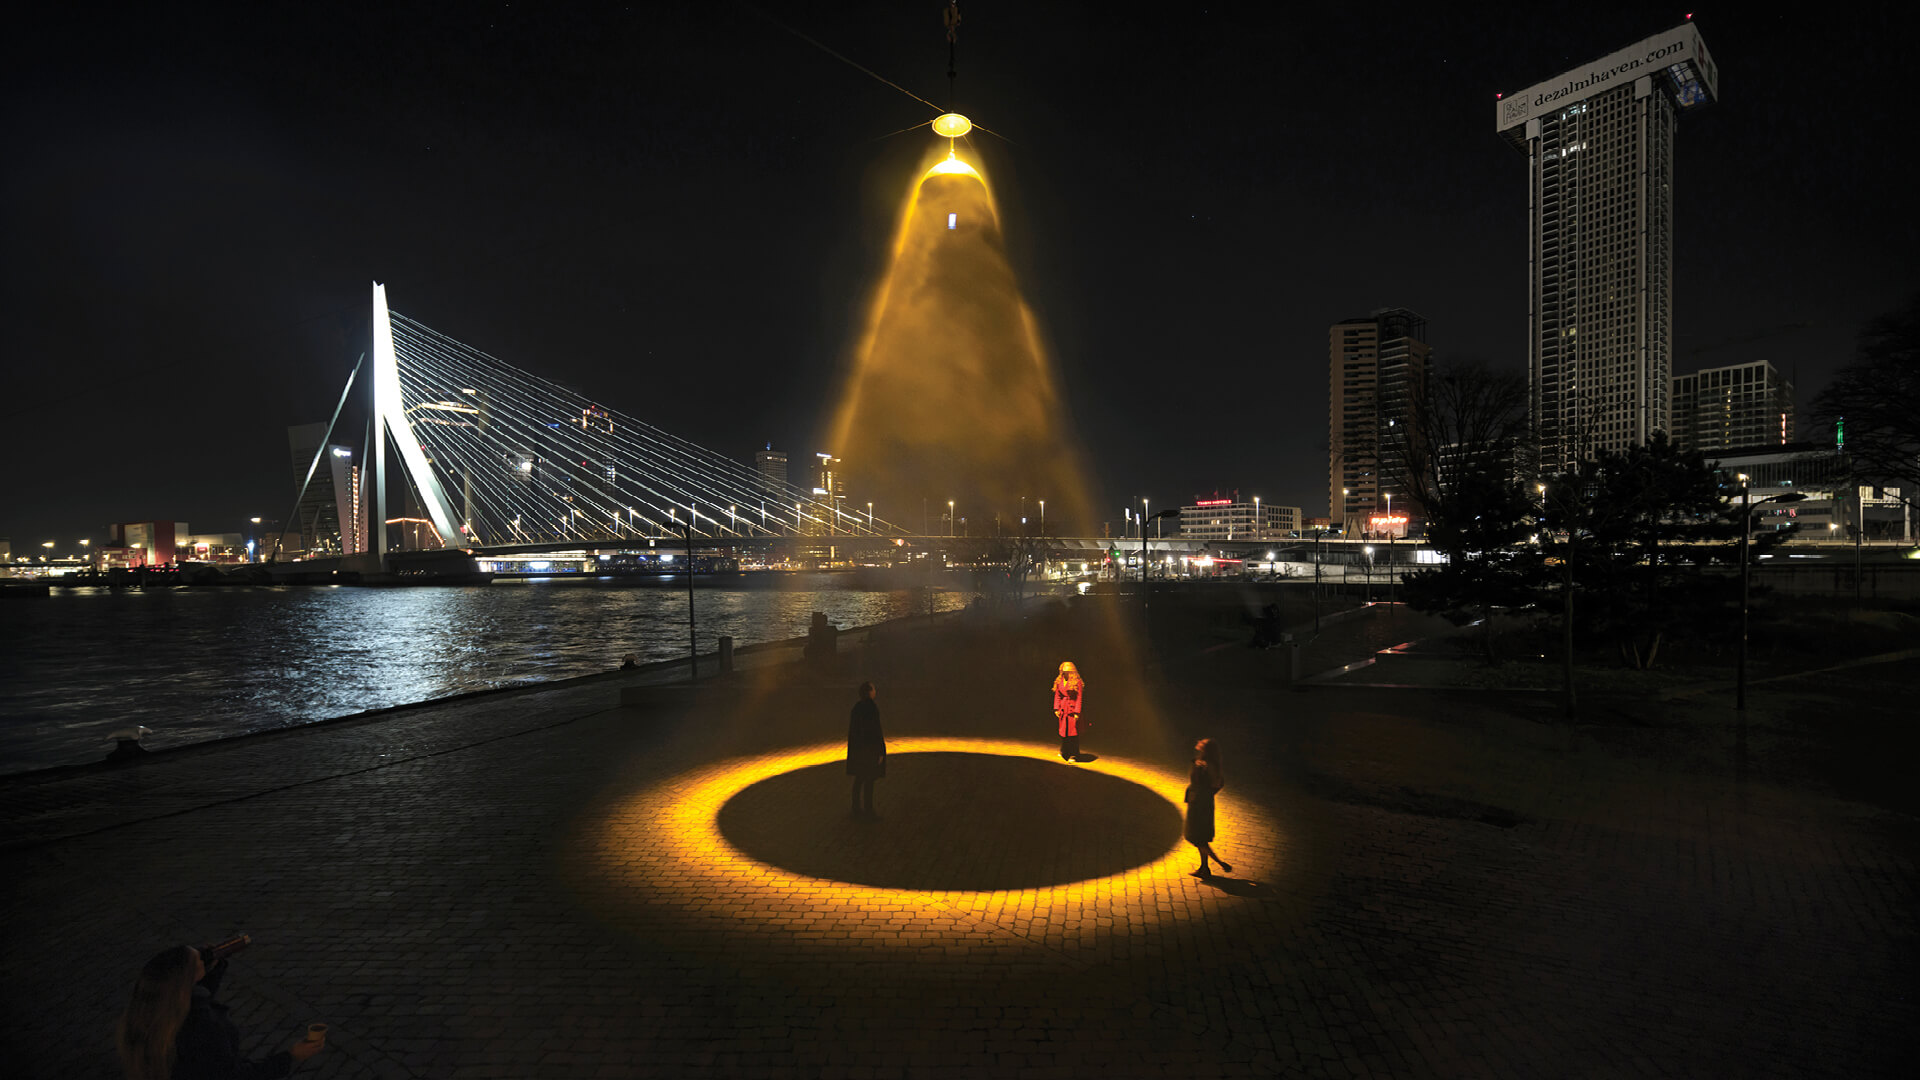 We dreamt about an Urban Sun floating above our cities: Daan Roosegaarde